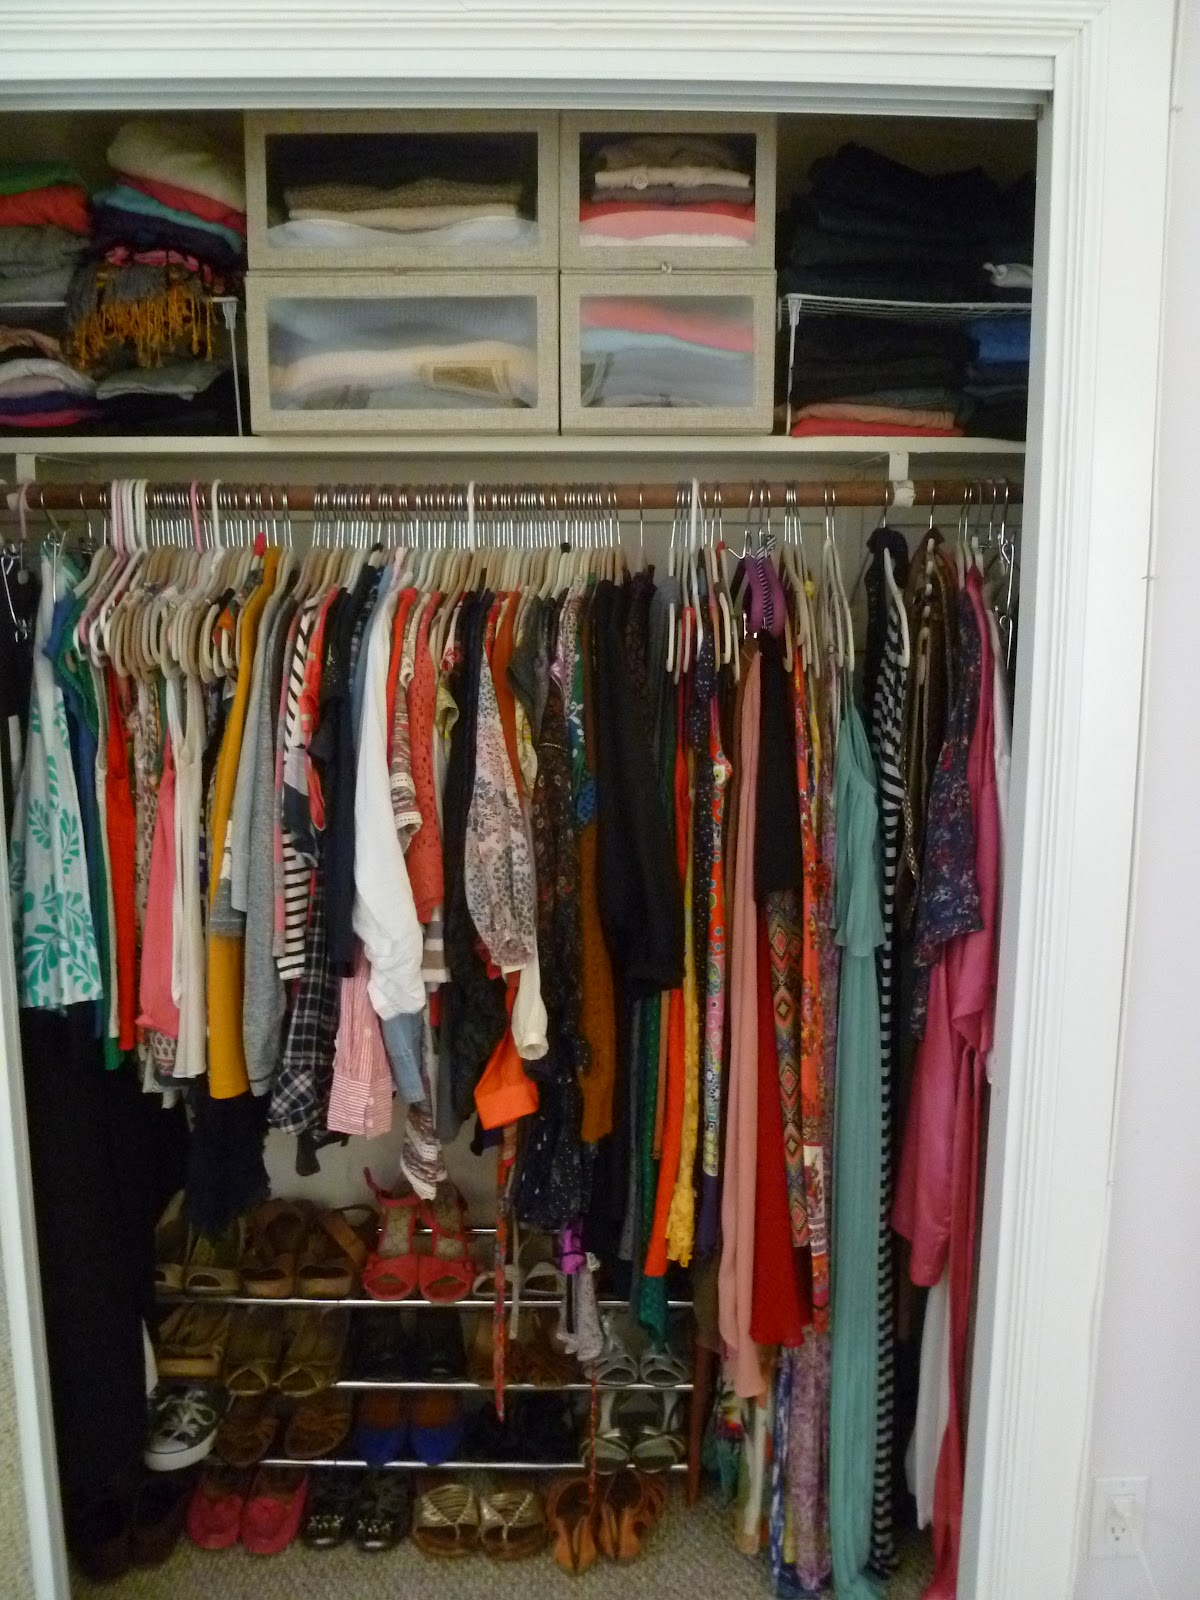 Cleaning Closet Entrancing Of Spring Clean Out Your Closet Images